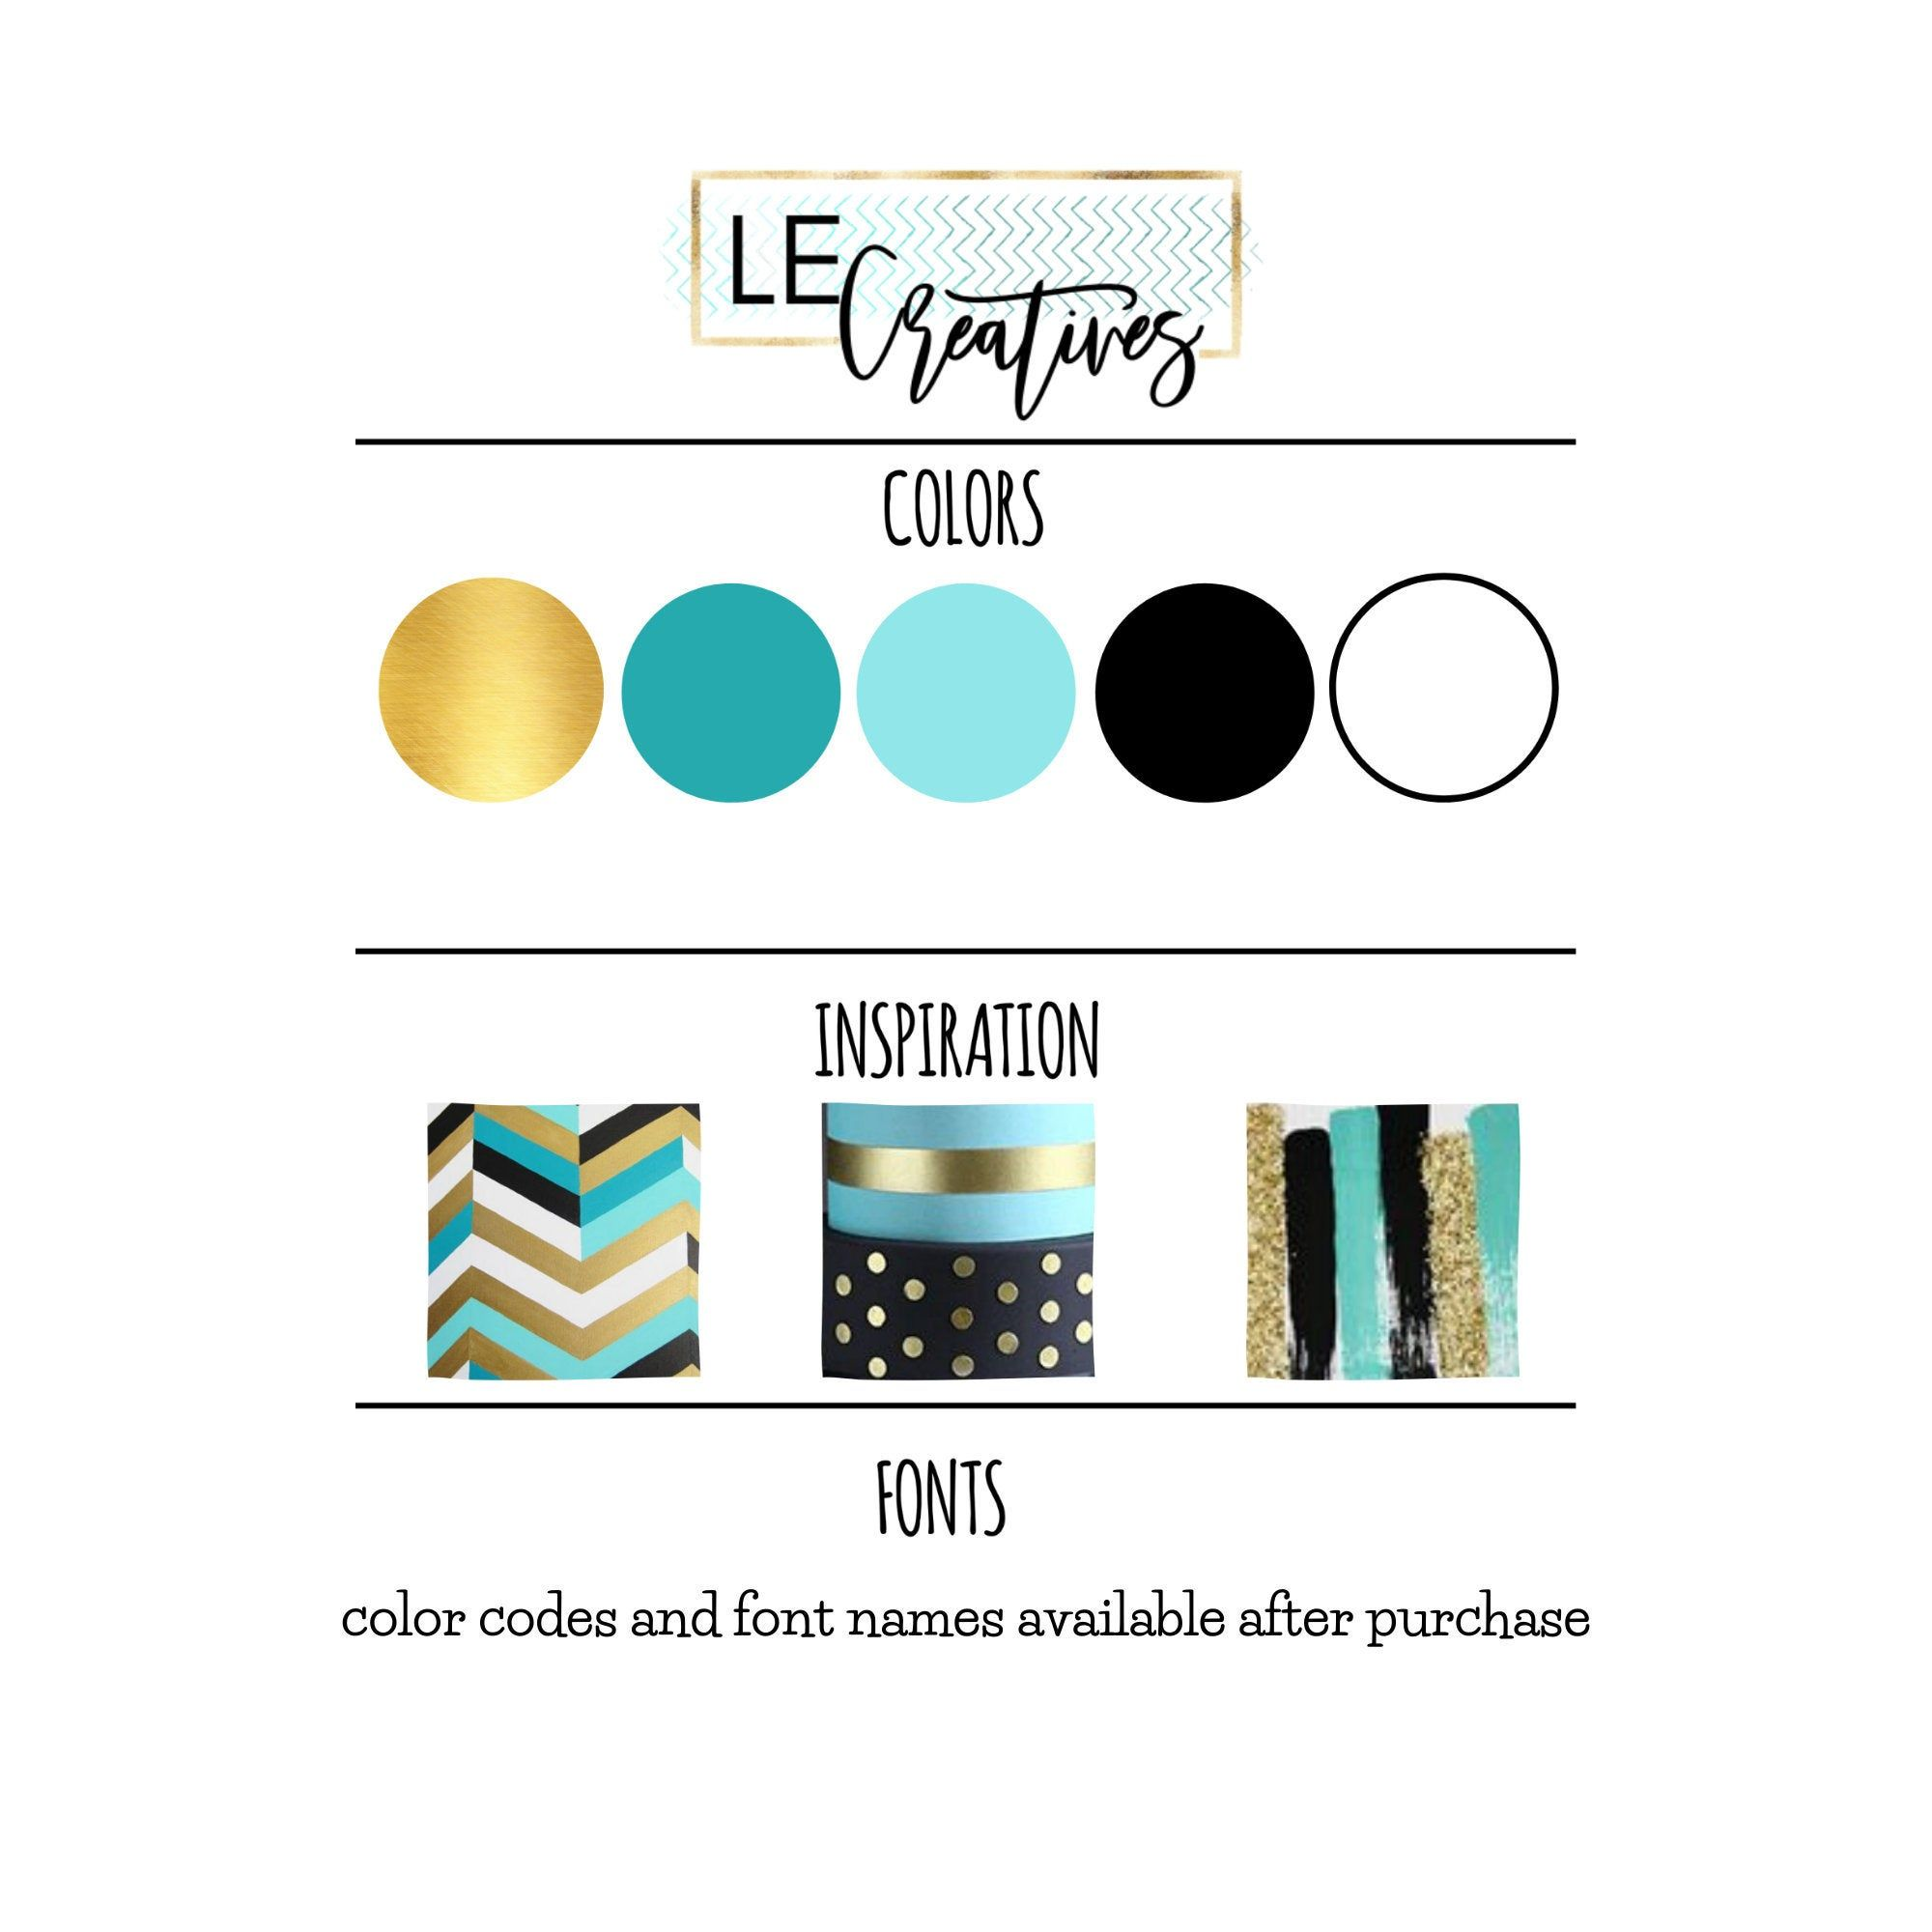 Teal Black Gold White Branding Theme Logo Business Color Theme